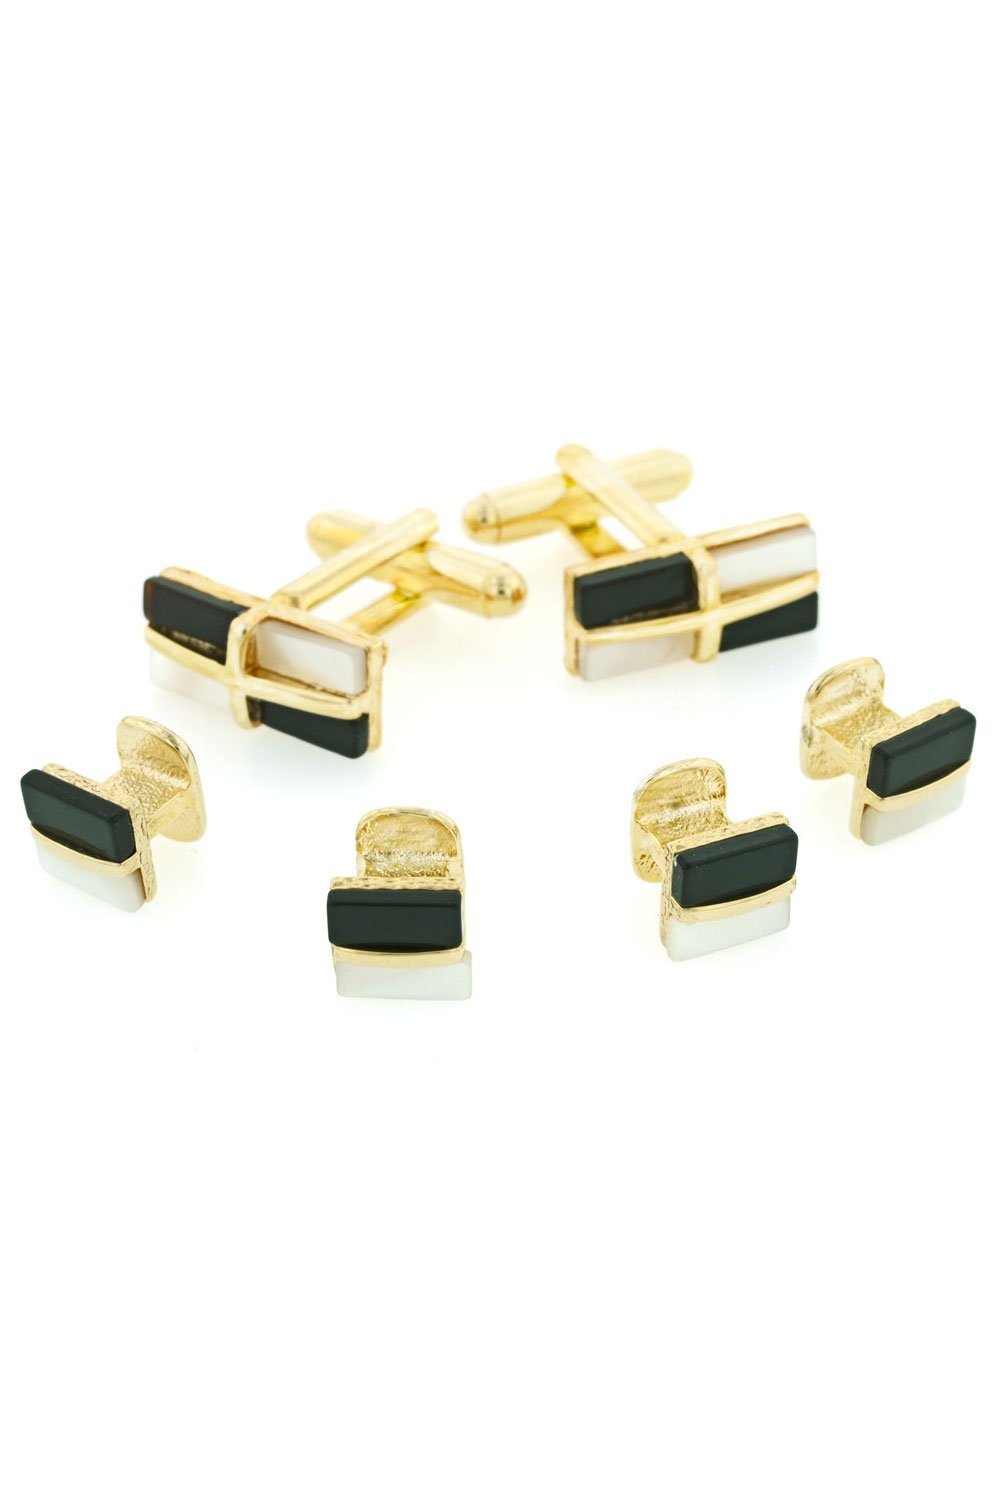 Mother of Pearl & Onyx Gold Studs and Cufflinks Set